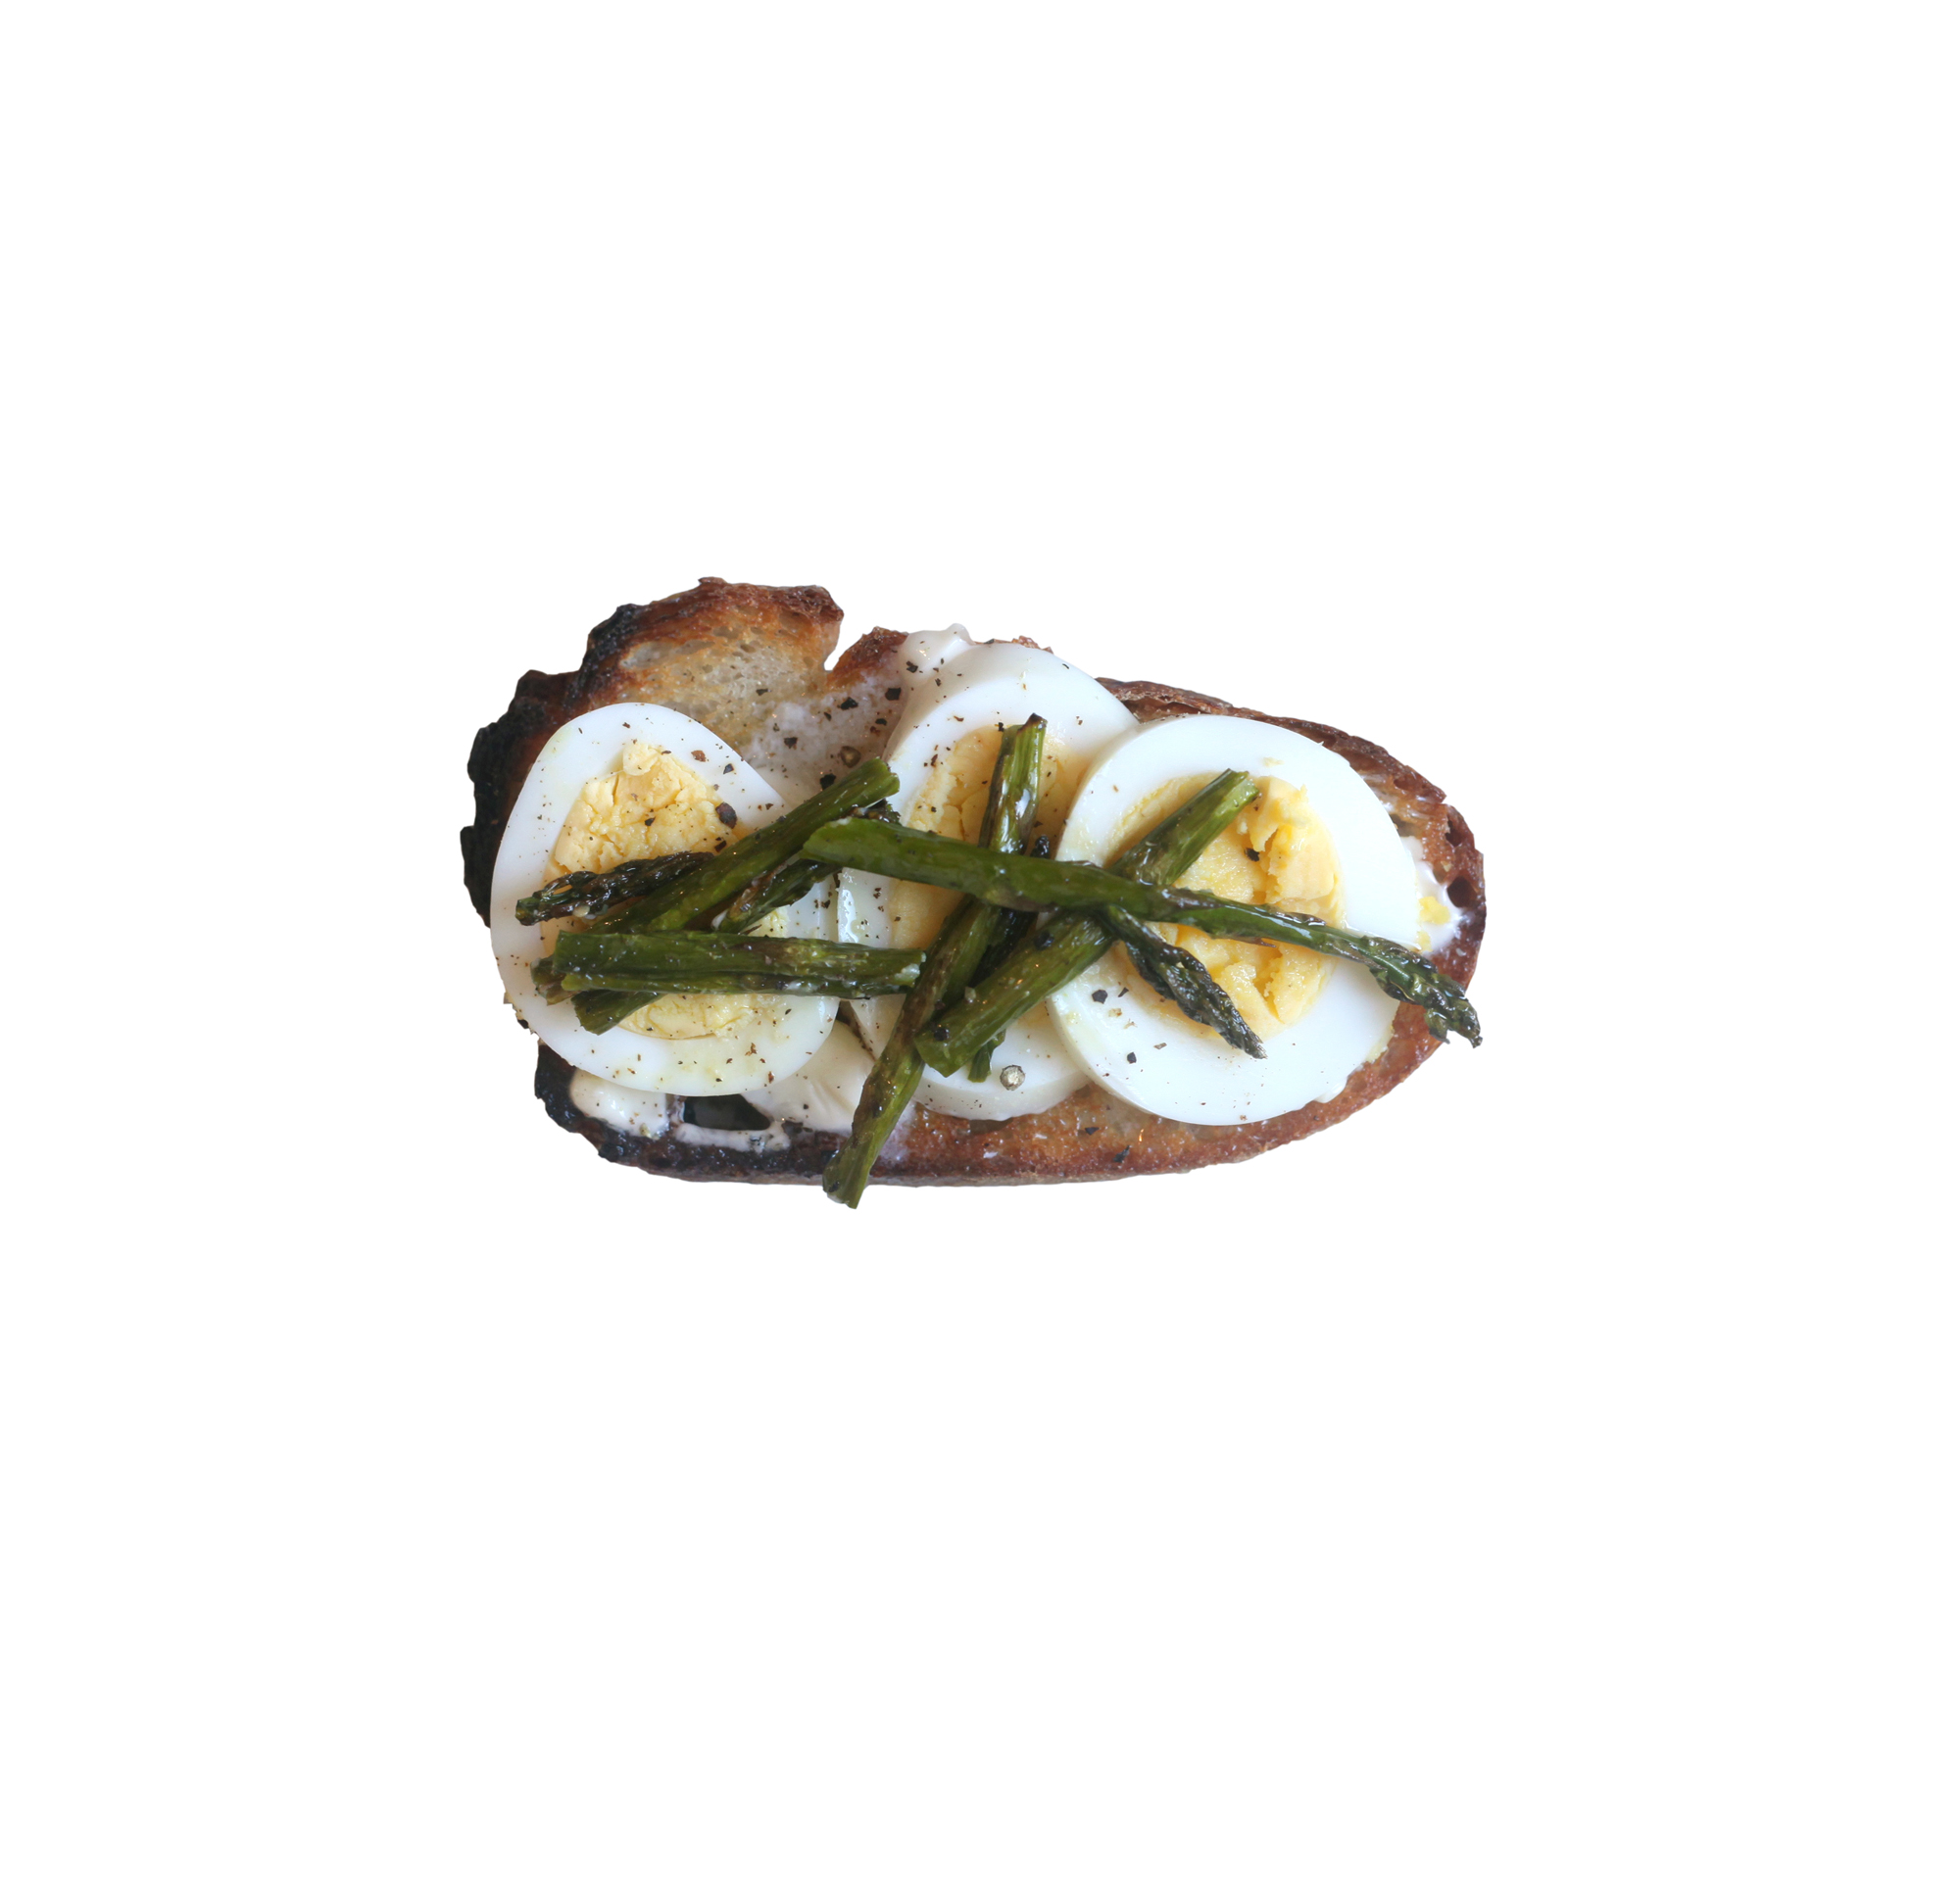 Roasted Asparagus and Egg Toast